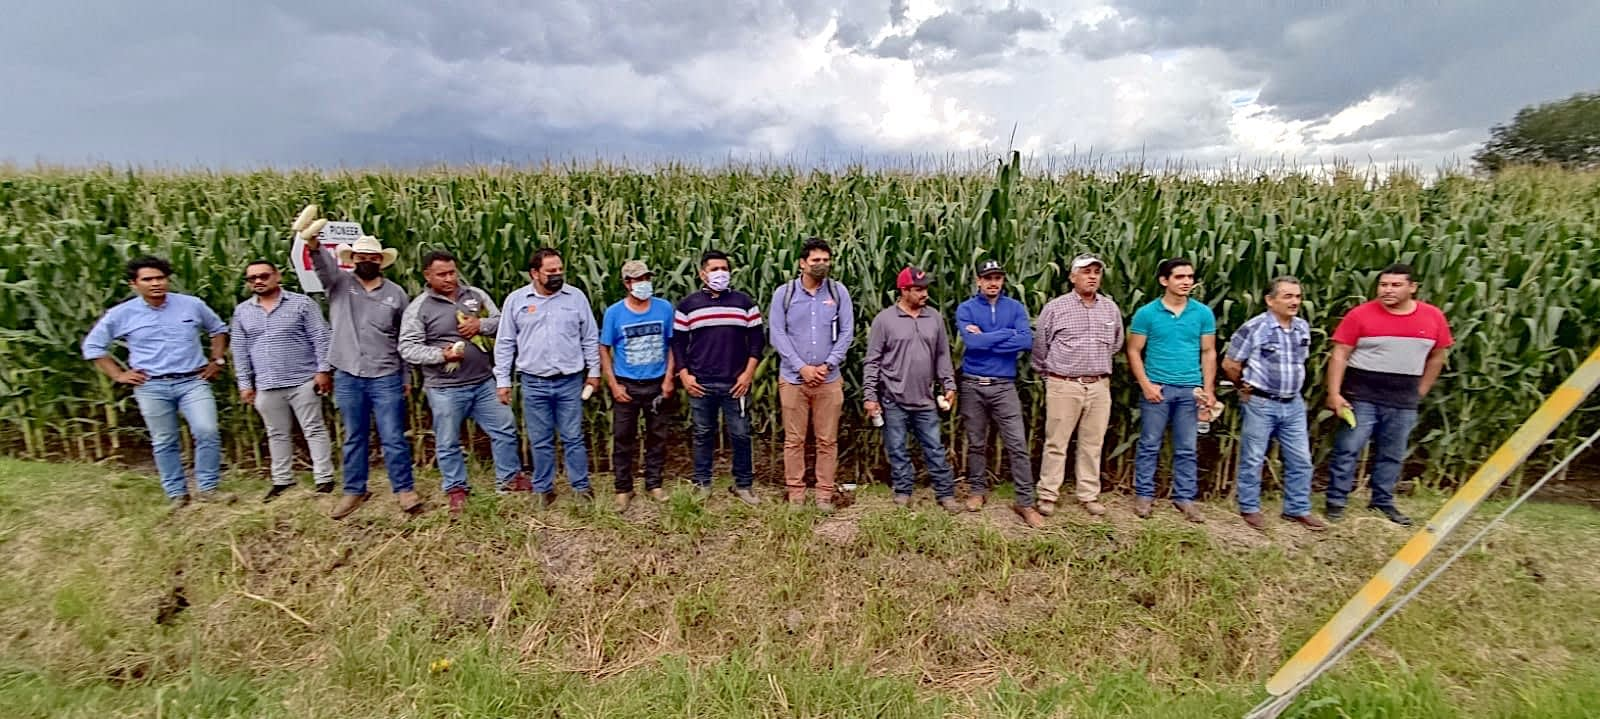 Planning meeting and field day with farmers who want to participate in the Agriba Sustentable project, in El Greco, Pénjamo, in Mexico's Guanajuato state. (Photo: CIMMYT)